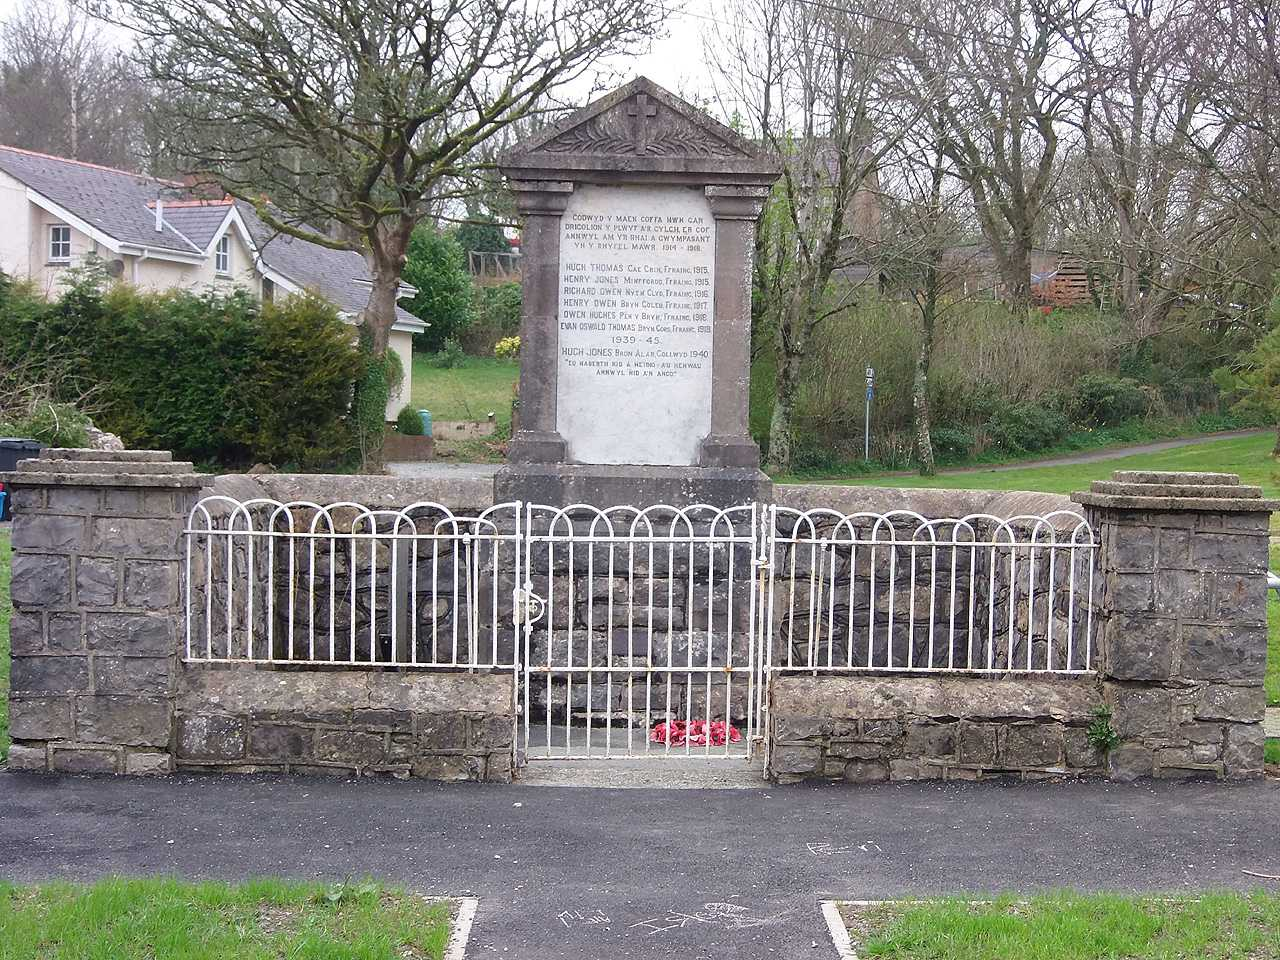 Anglesey, Talwrn War Memorial and Enclosure